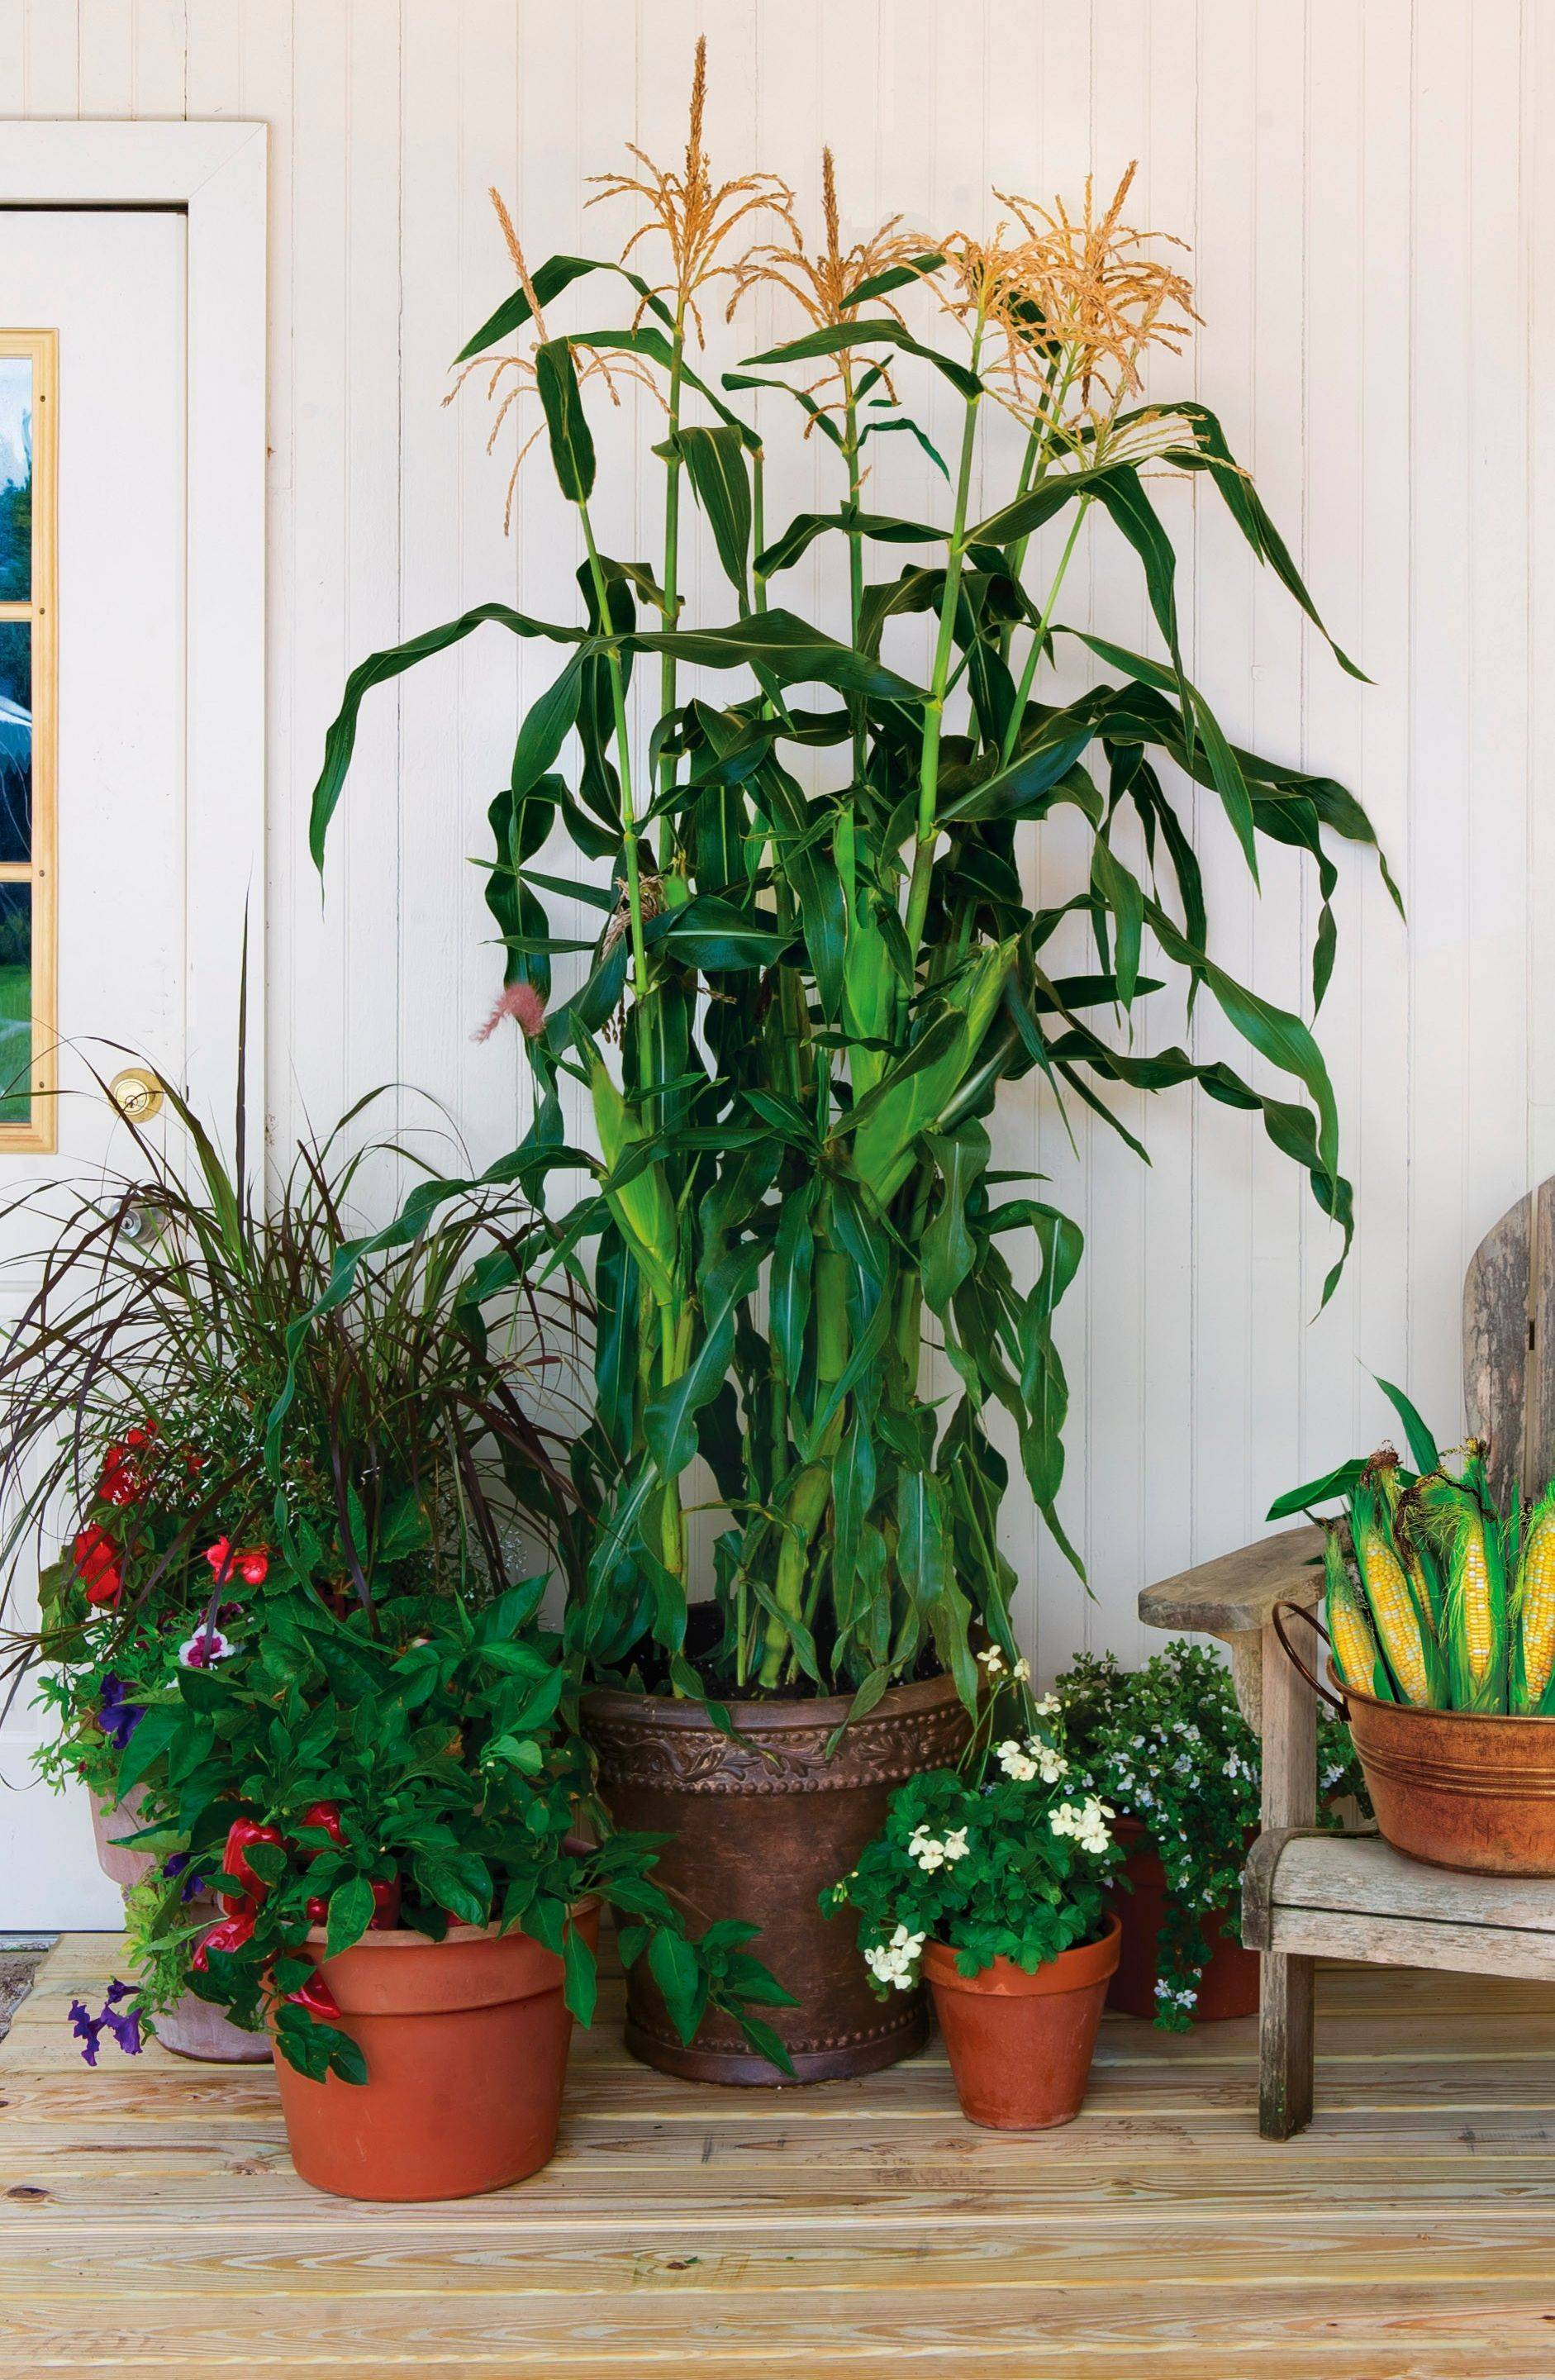 Sweet corn growing in a pot illustrates the possibilities with On Deck Sweet Corn by Burpee, which is developing several high-yield vegetables being grown for patios or tight spaces.